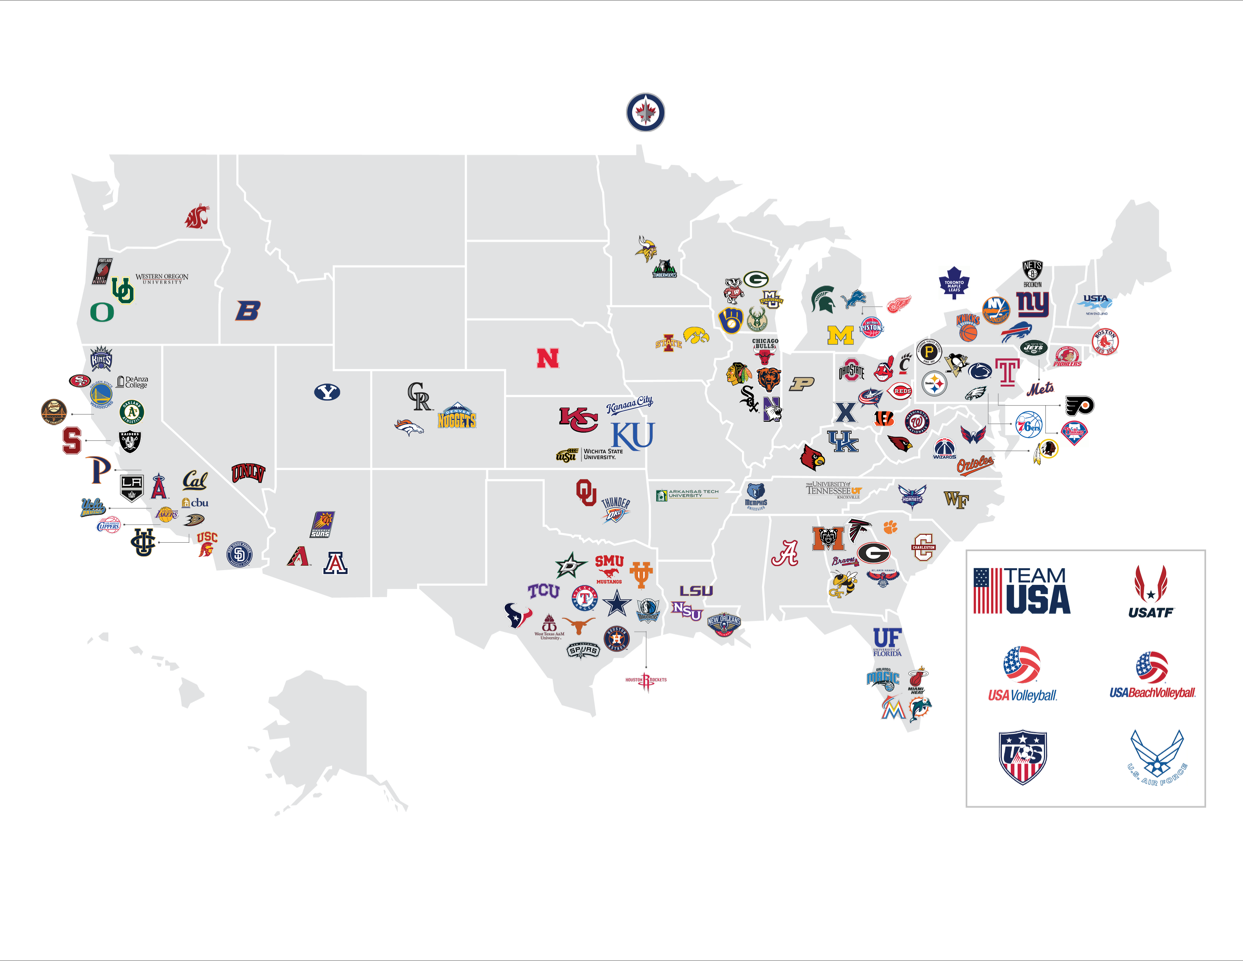 Map of the USA showing sports teams that use Hypervolt